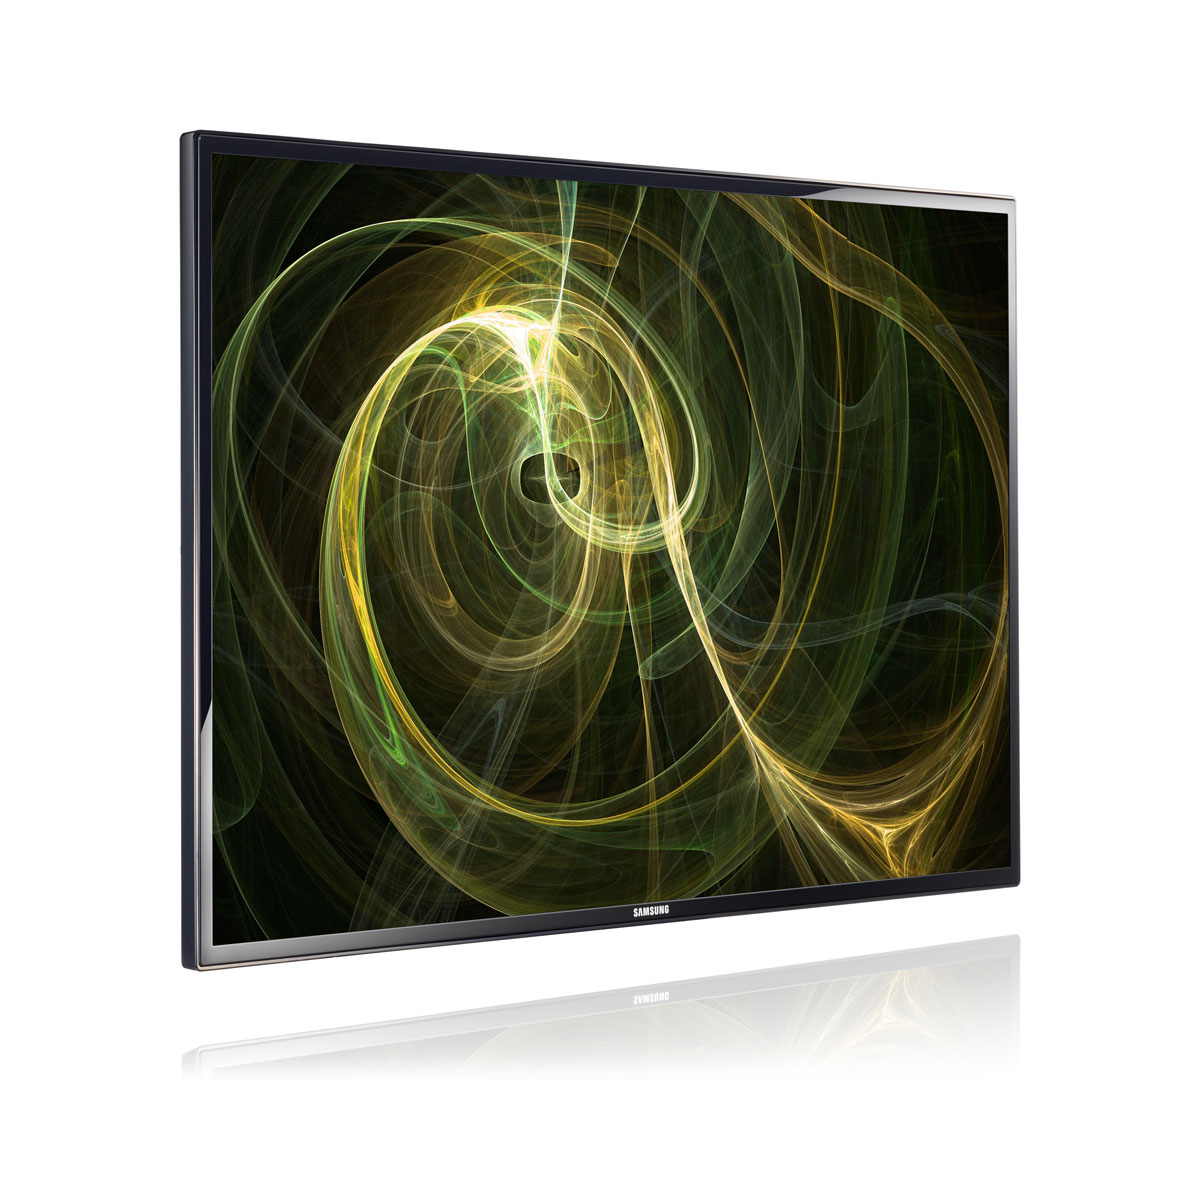 "Ecran dynamique Samsung 46"" LED ME46B 1920 x 1080 pixels - 350 cd/m² - 8 ms - HDMI - DisplayPort - Noir"